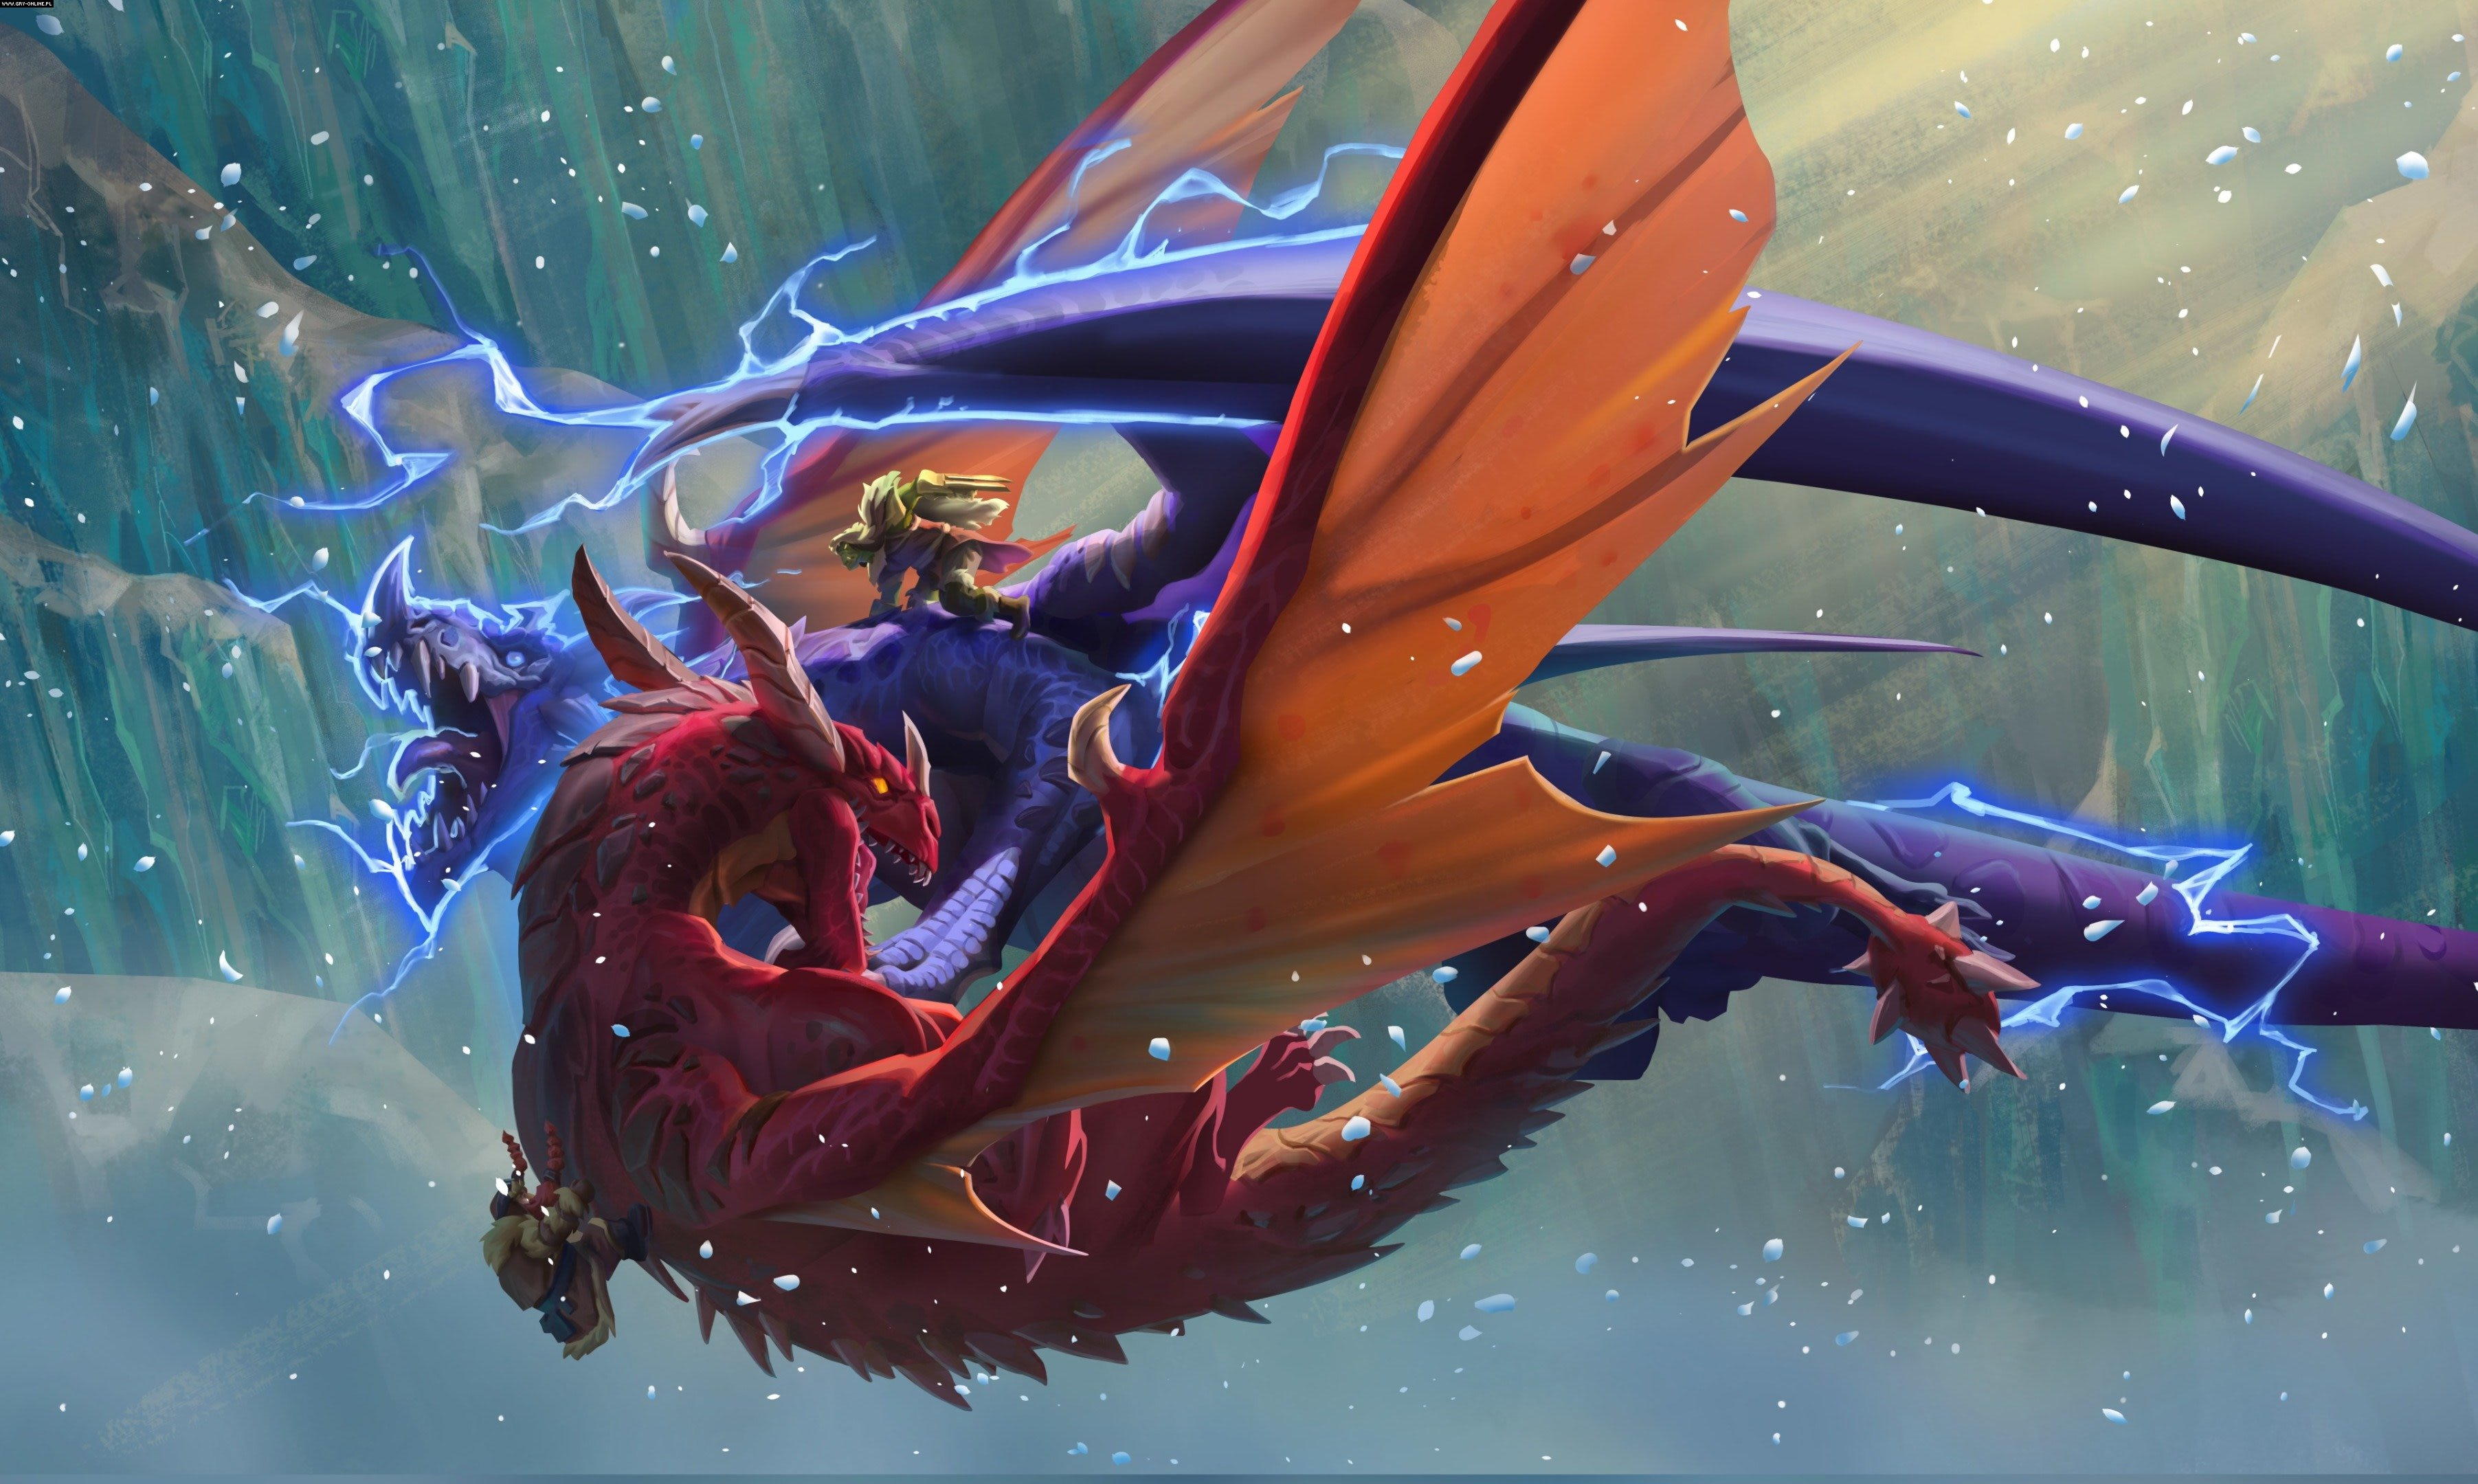 Hearthstone: Descent of Dragons PC, iOS, AND Games Image 9/18, Blizzard Entertainment